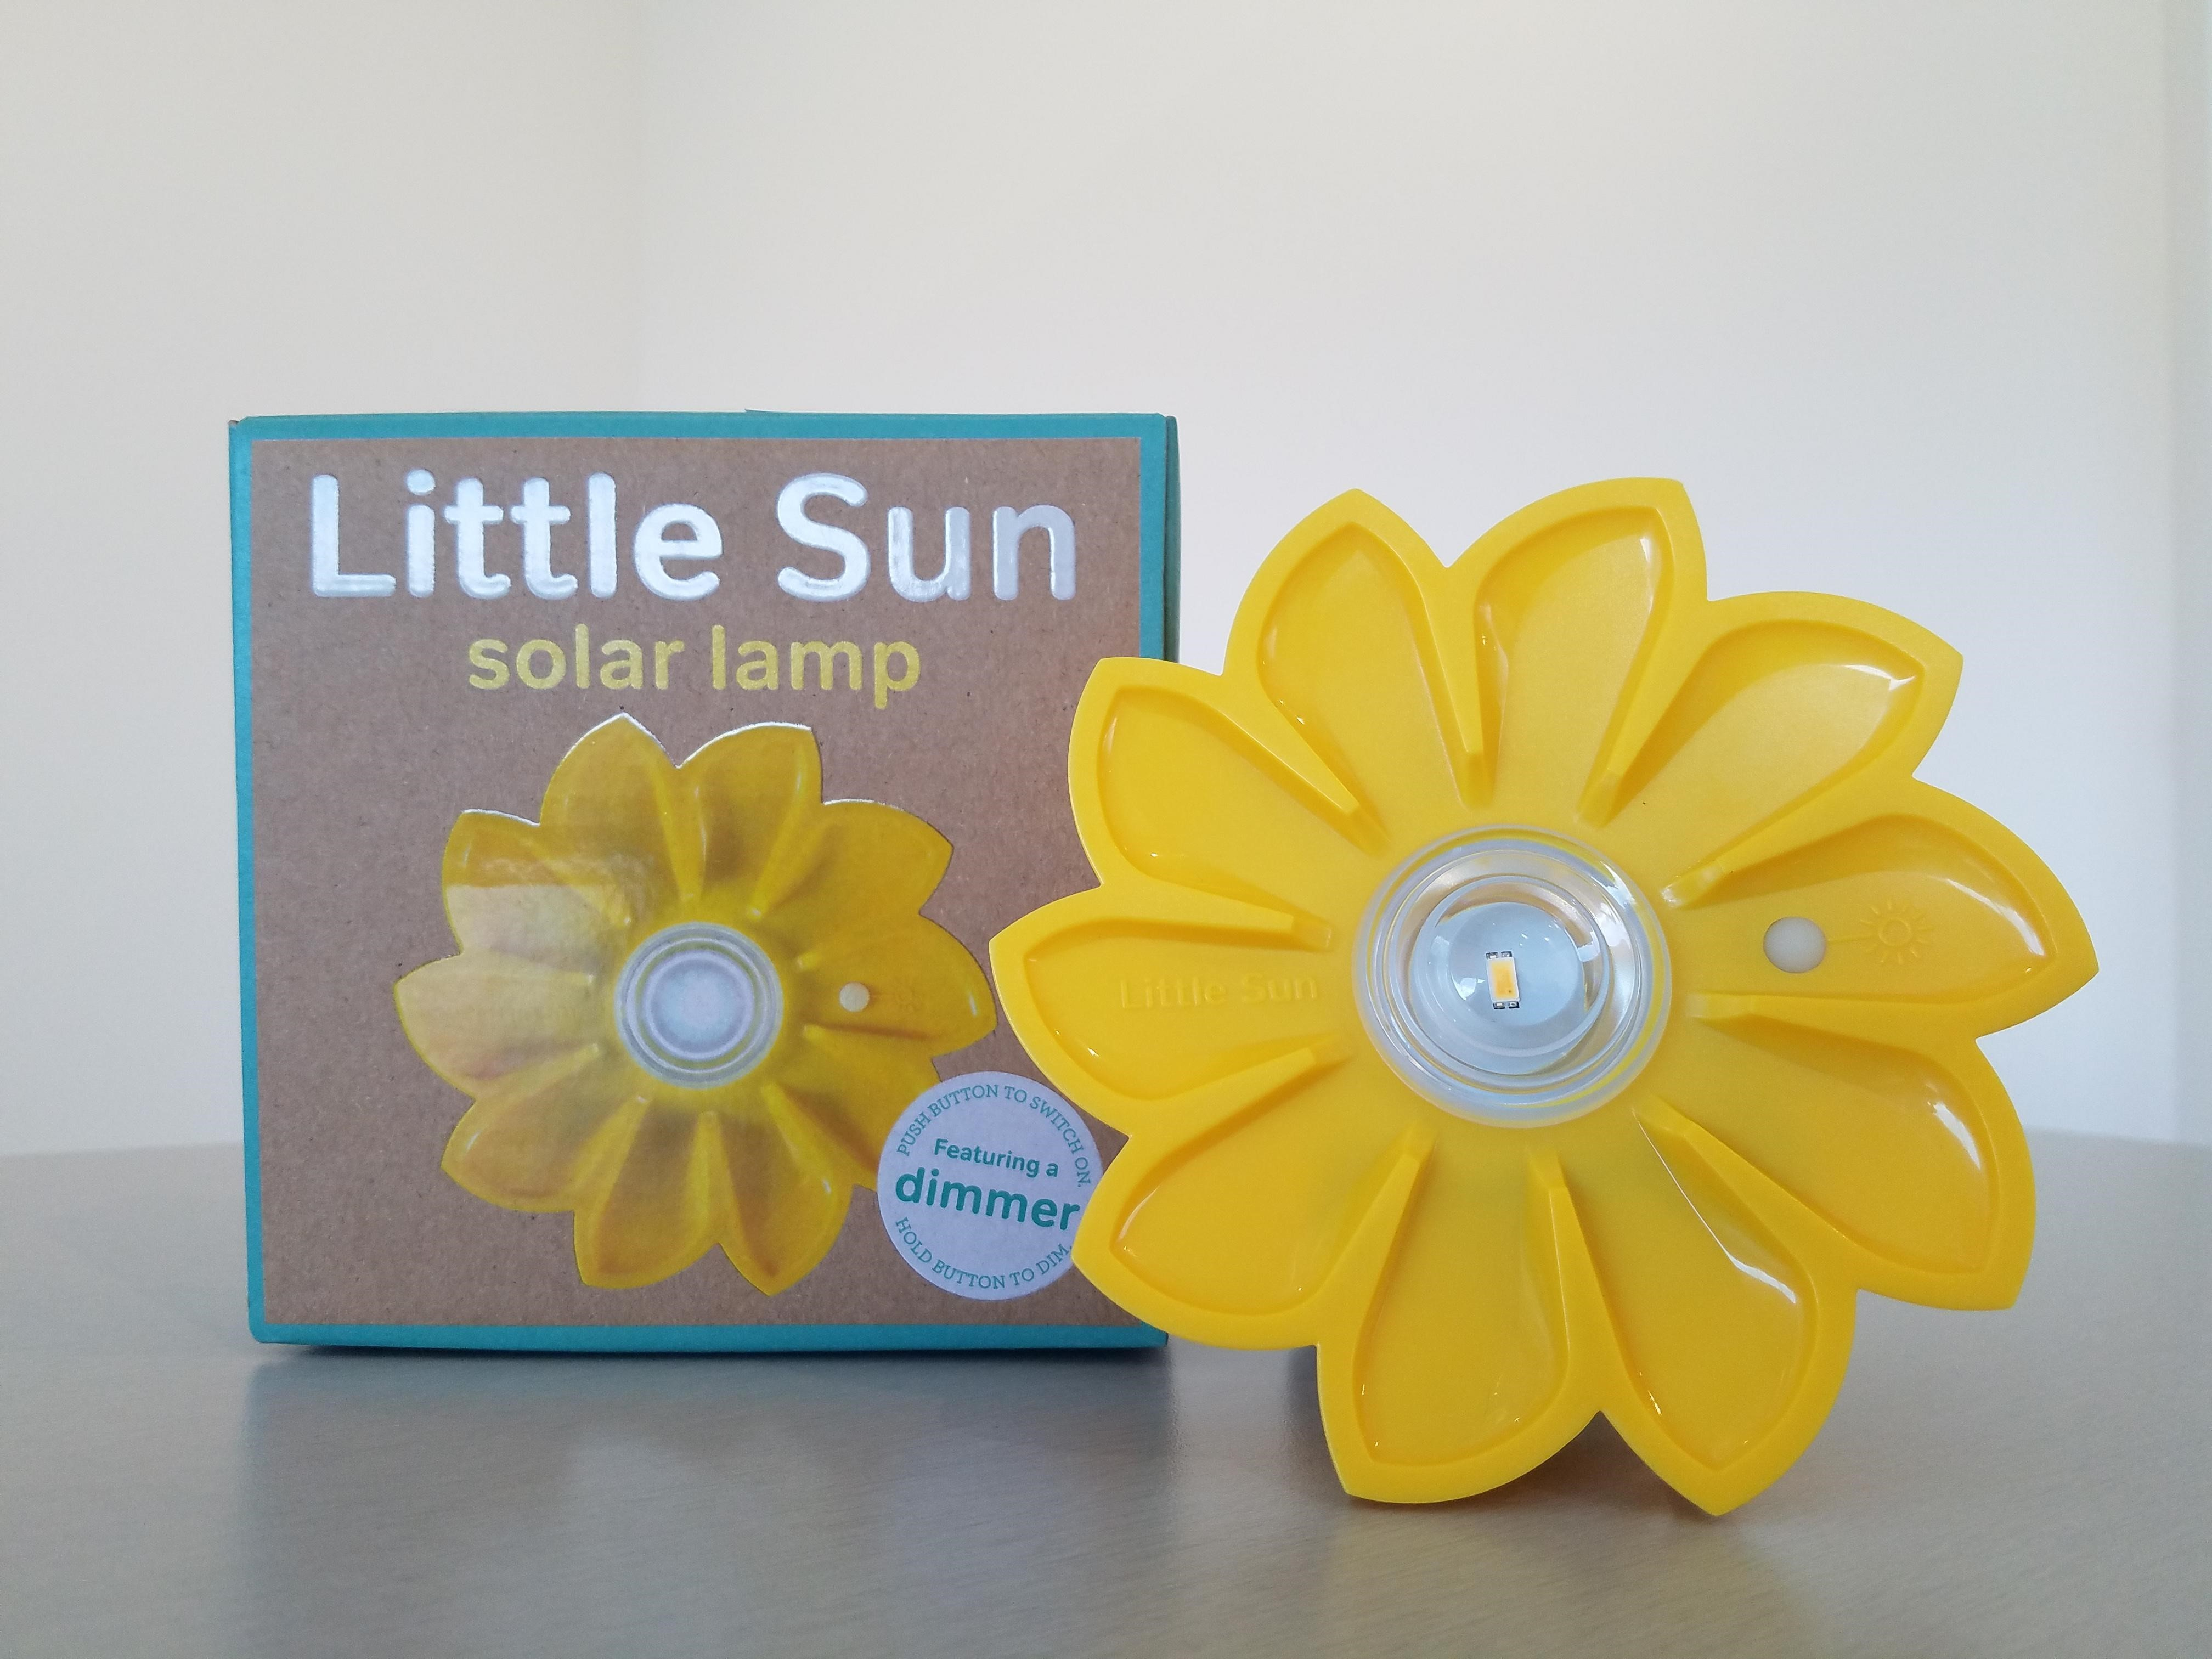 A plastic solar lamp is shaped like a yellow flower